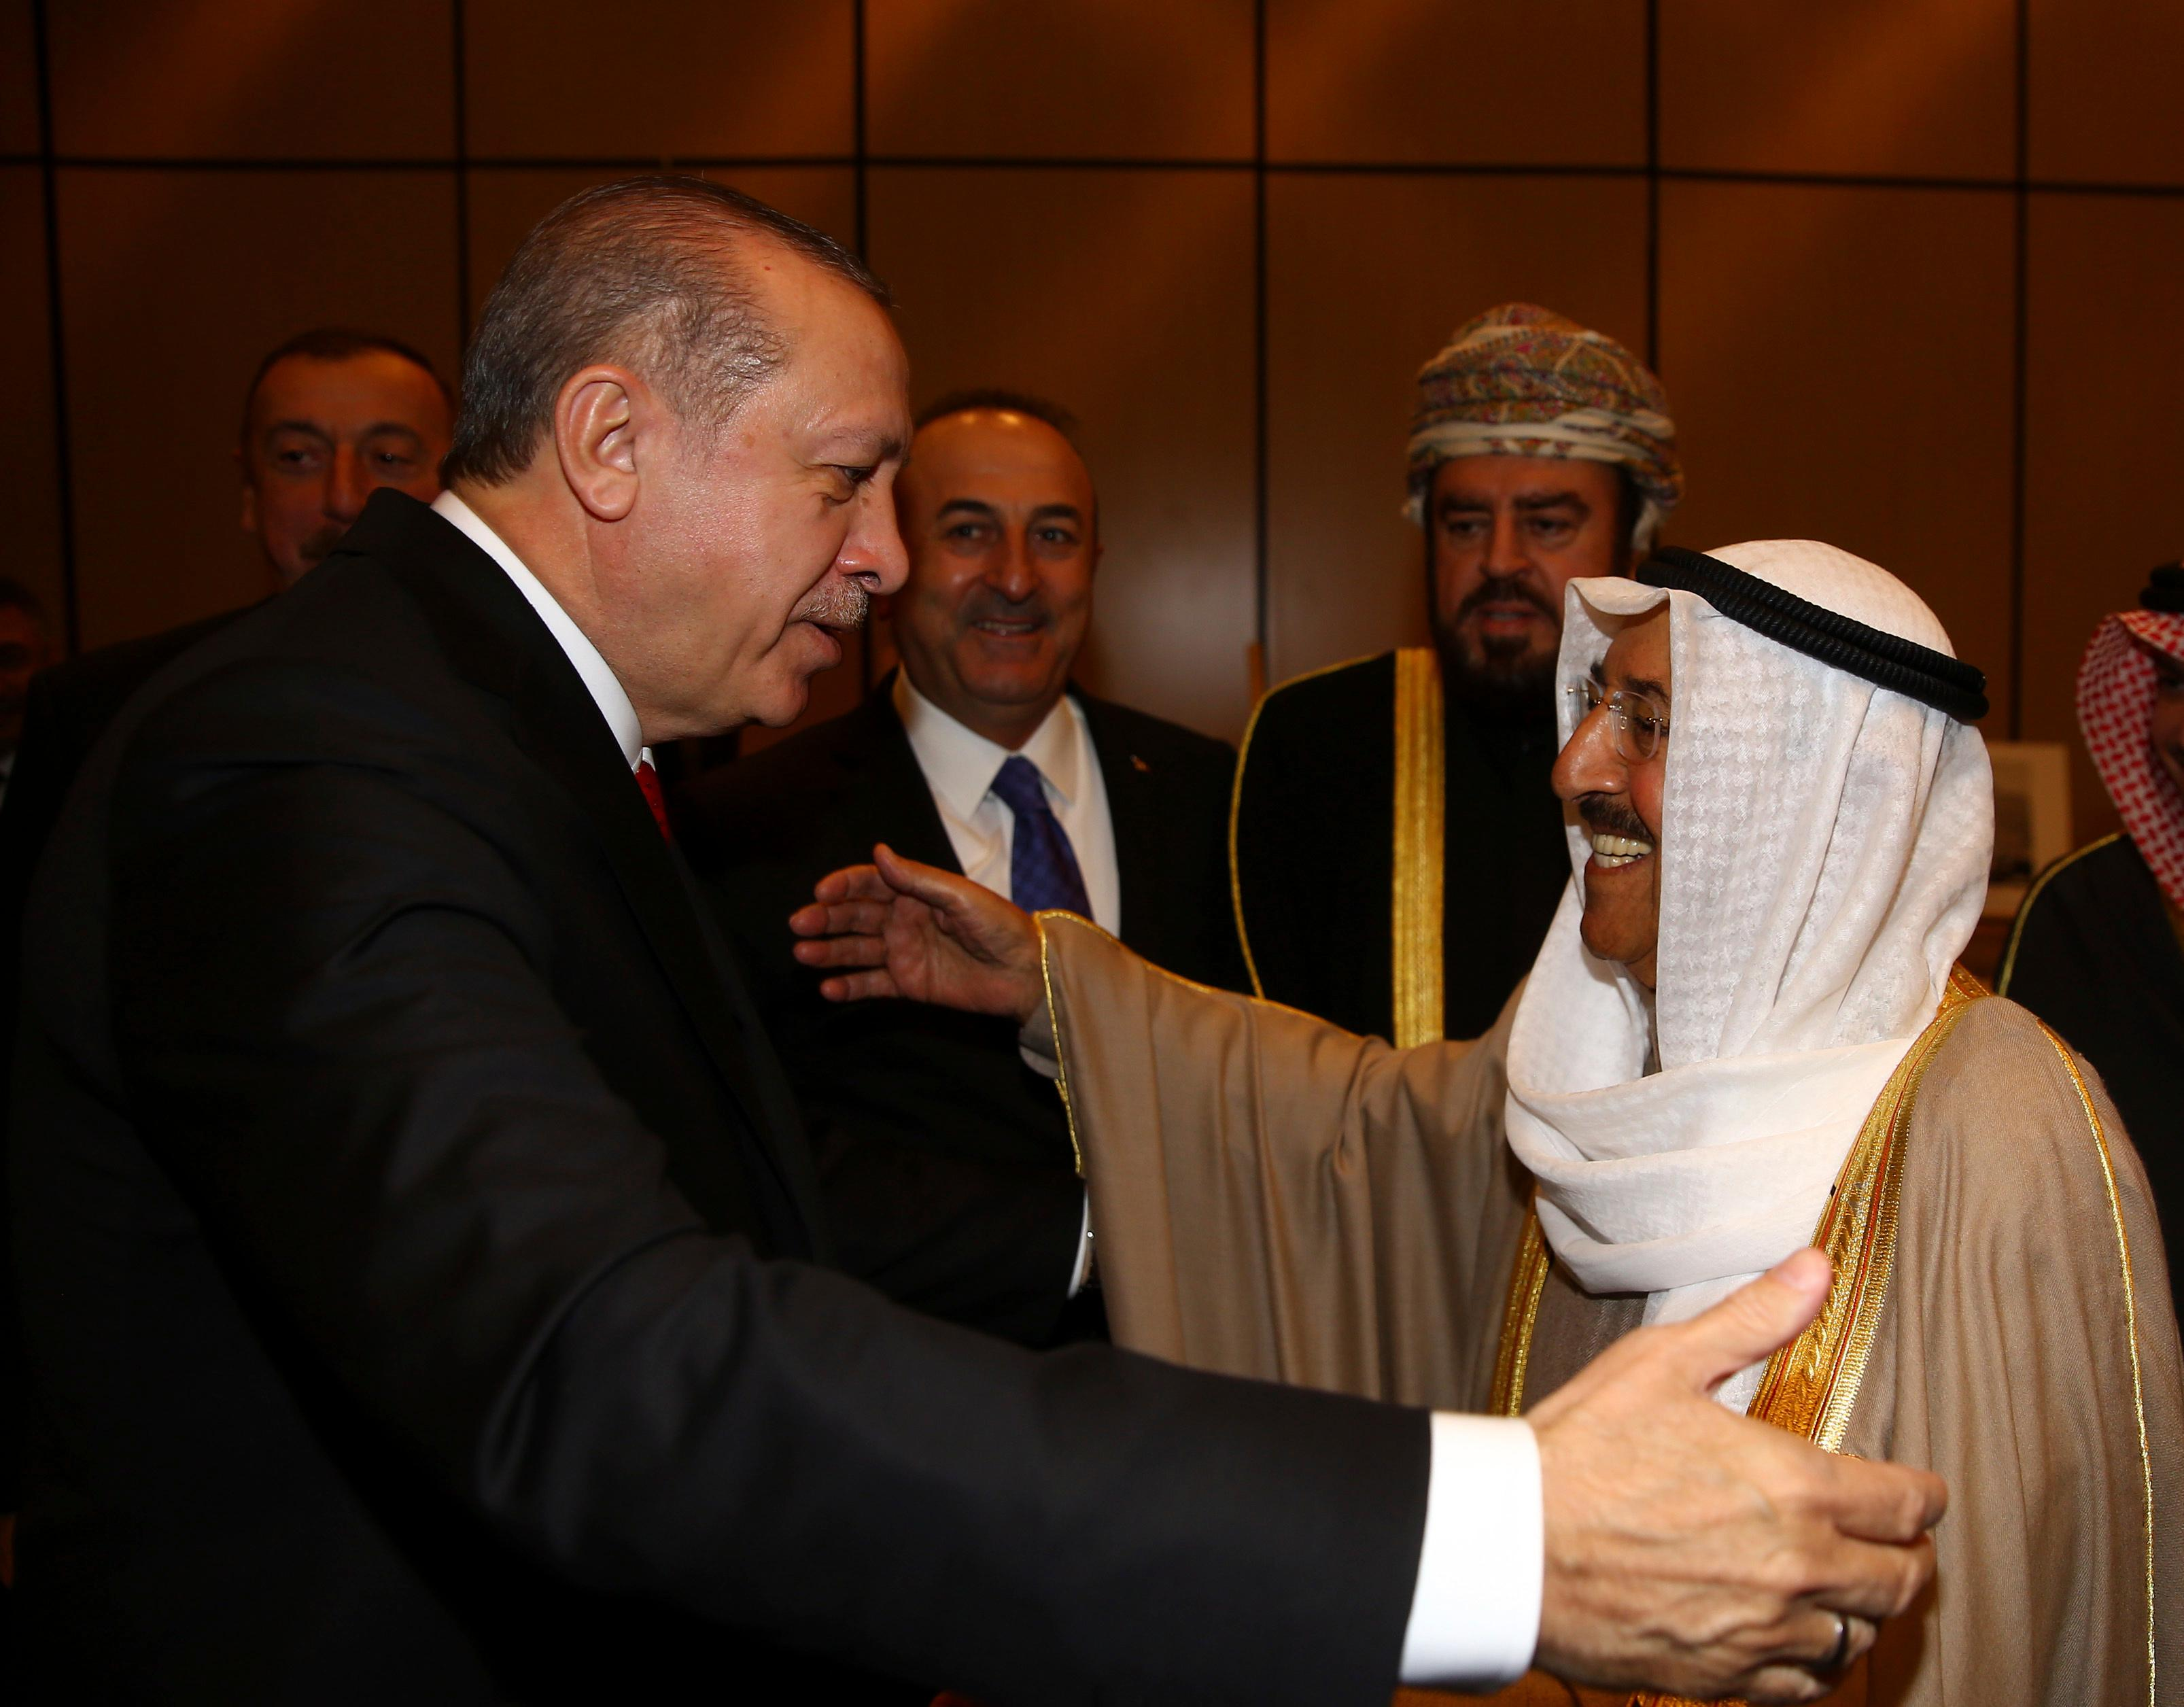 Turkey's President Recep Tayyip Erdogan, left, welcomes Kuwait's Emir Sheikh Sabah Al Ahmad Al Sabah, right, prior to the opening session of the Organisation of Islamic Cooperation Extraordinary Summit in Istanbul, Wednesday, Dec. 13, 2017. The Istanbul gathering of heads of state and top officials from the 57-member Organisation of Islamic Cooperation could offer the Muslim world's strongest response yet to U.S. President Donald Trump's recognition of Jerusalem as the capital of Israel.(Kayhan Ozer/Pool Photo via AP)